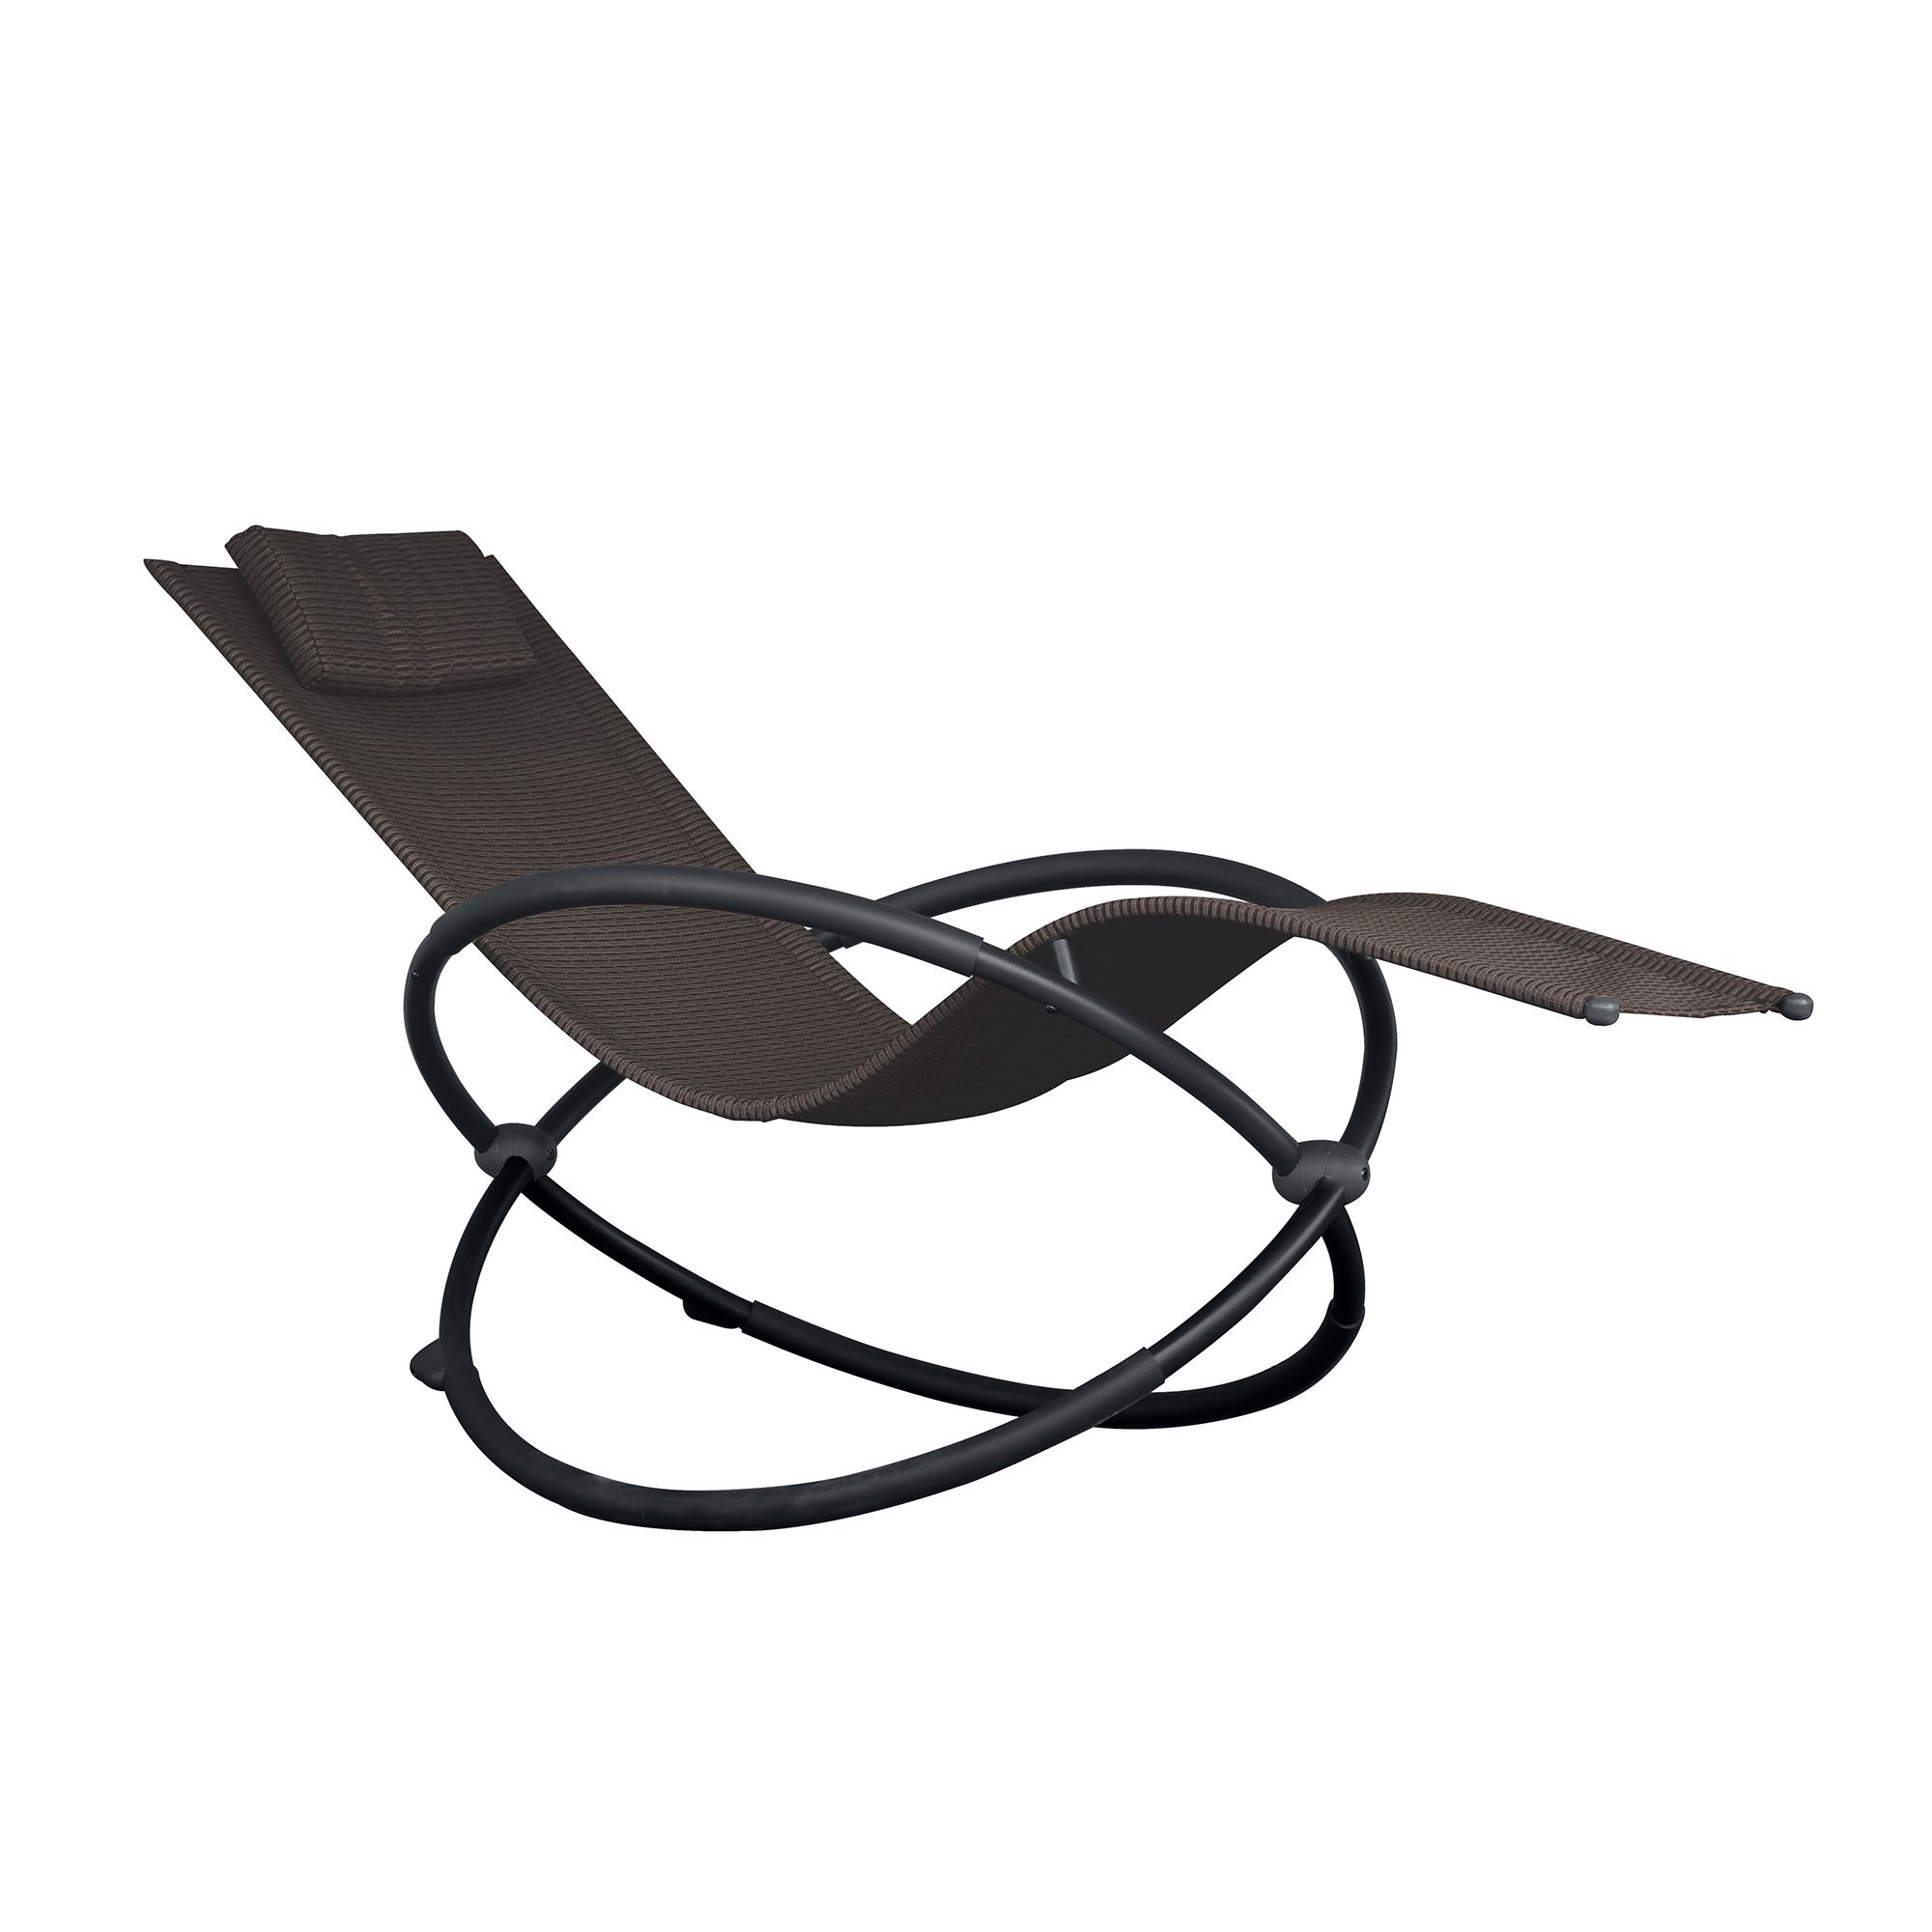 Phat Tommy Orbital Lounger Green Apple Patio Furniture Acrylic